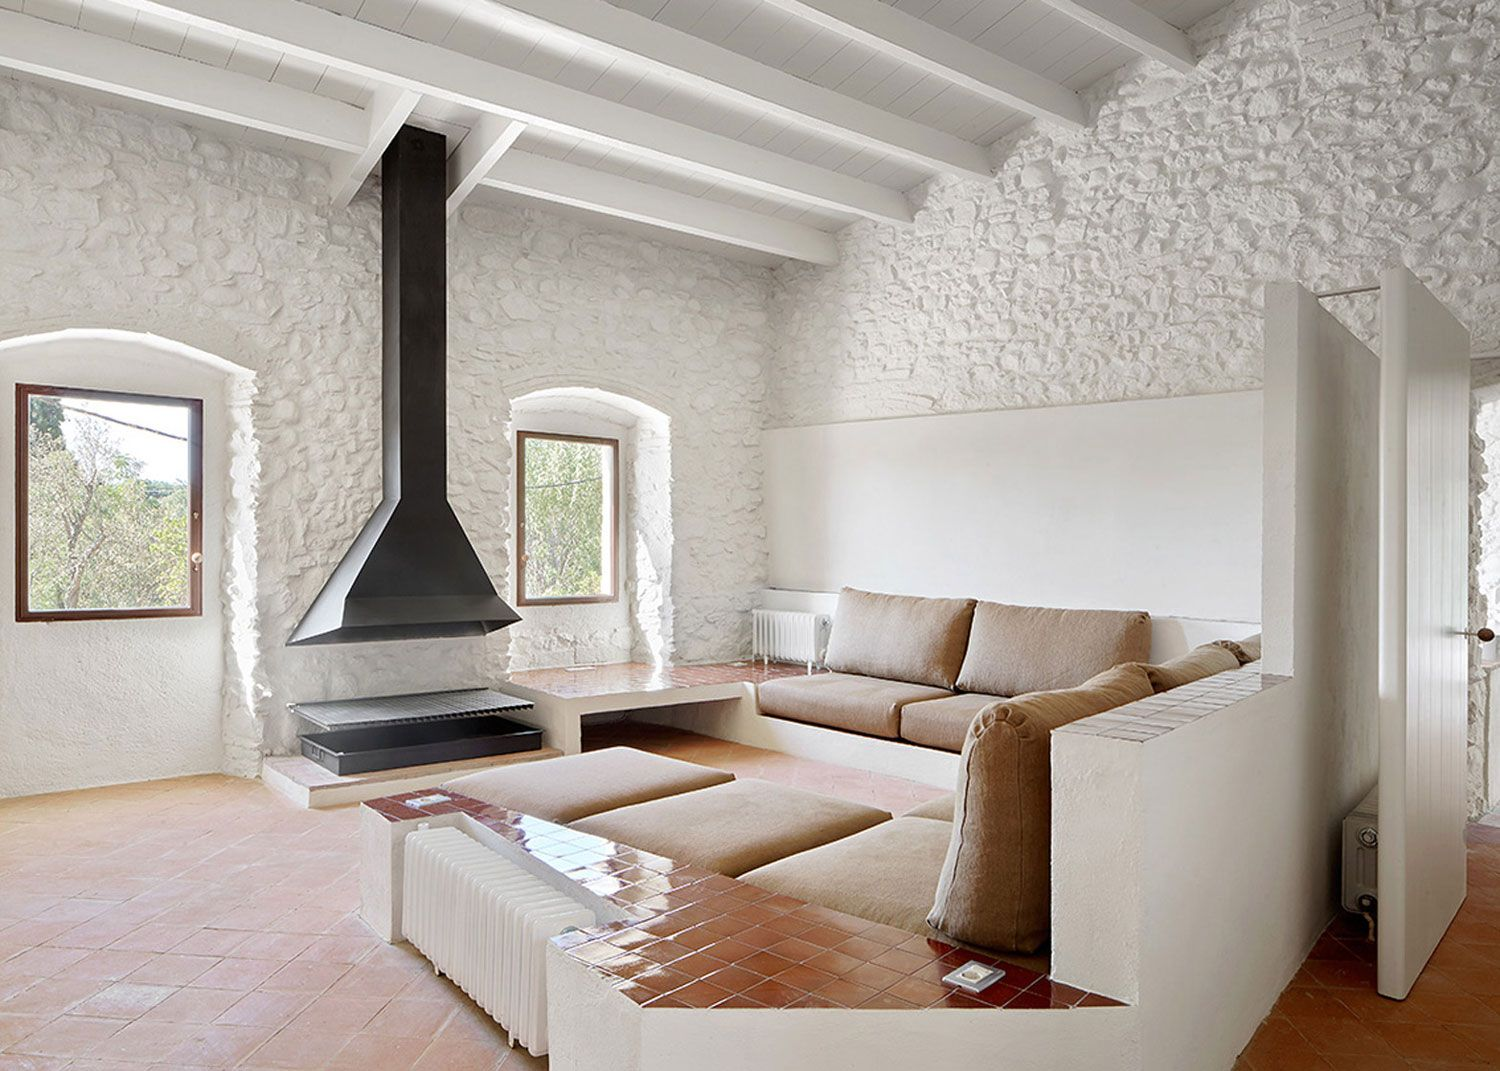 Epic Farmhouse Renovation In Spain By Arquitectura G.